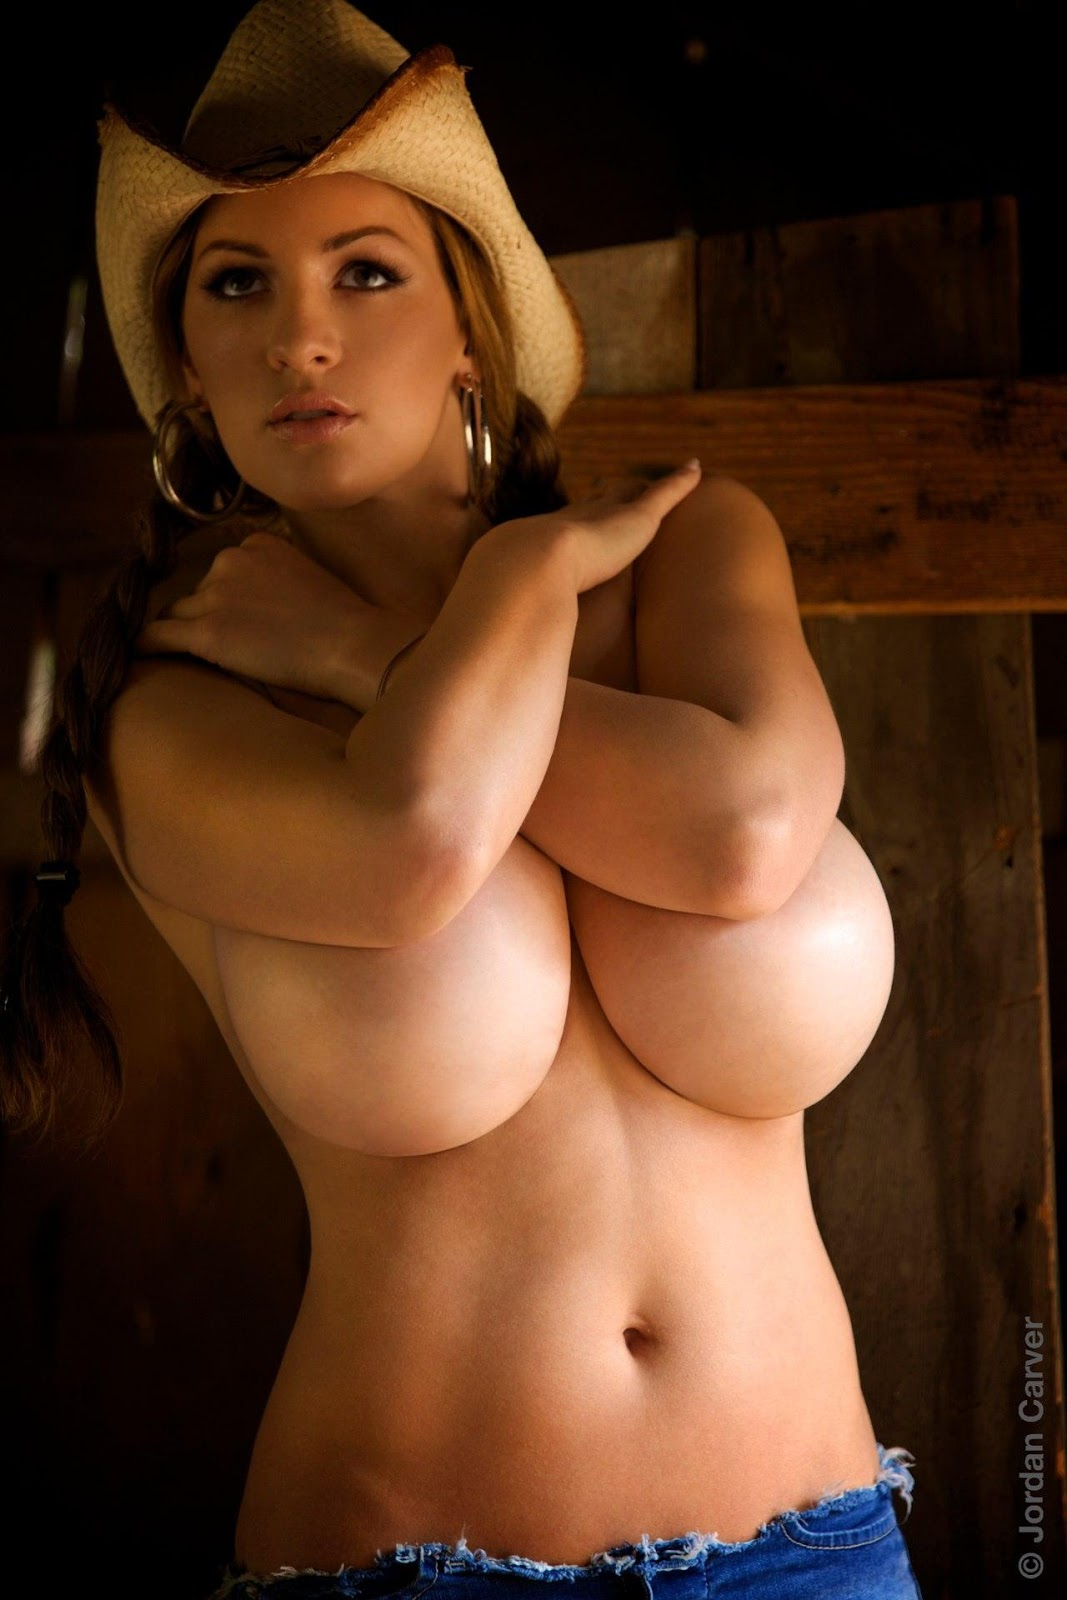 Woman breast photo gallery opinion you